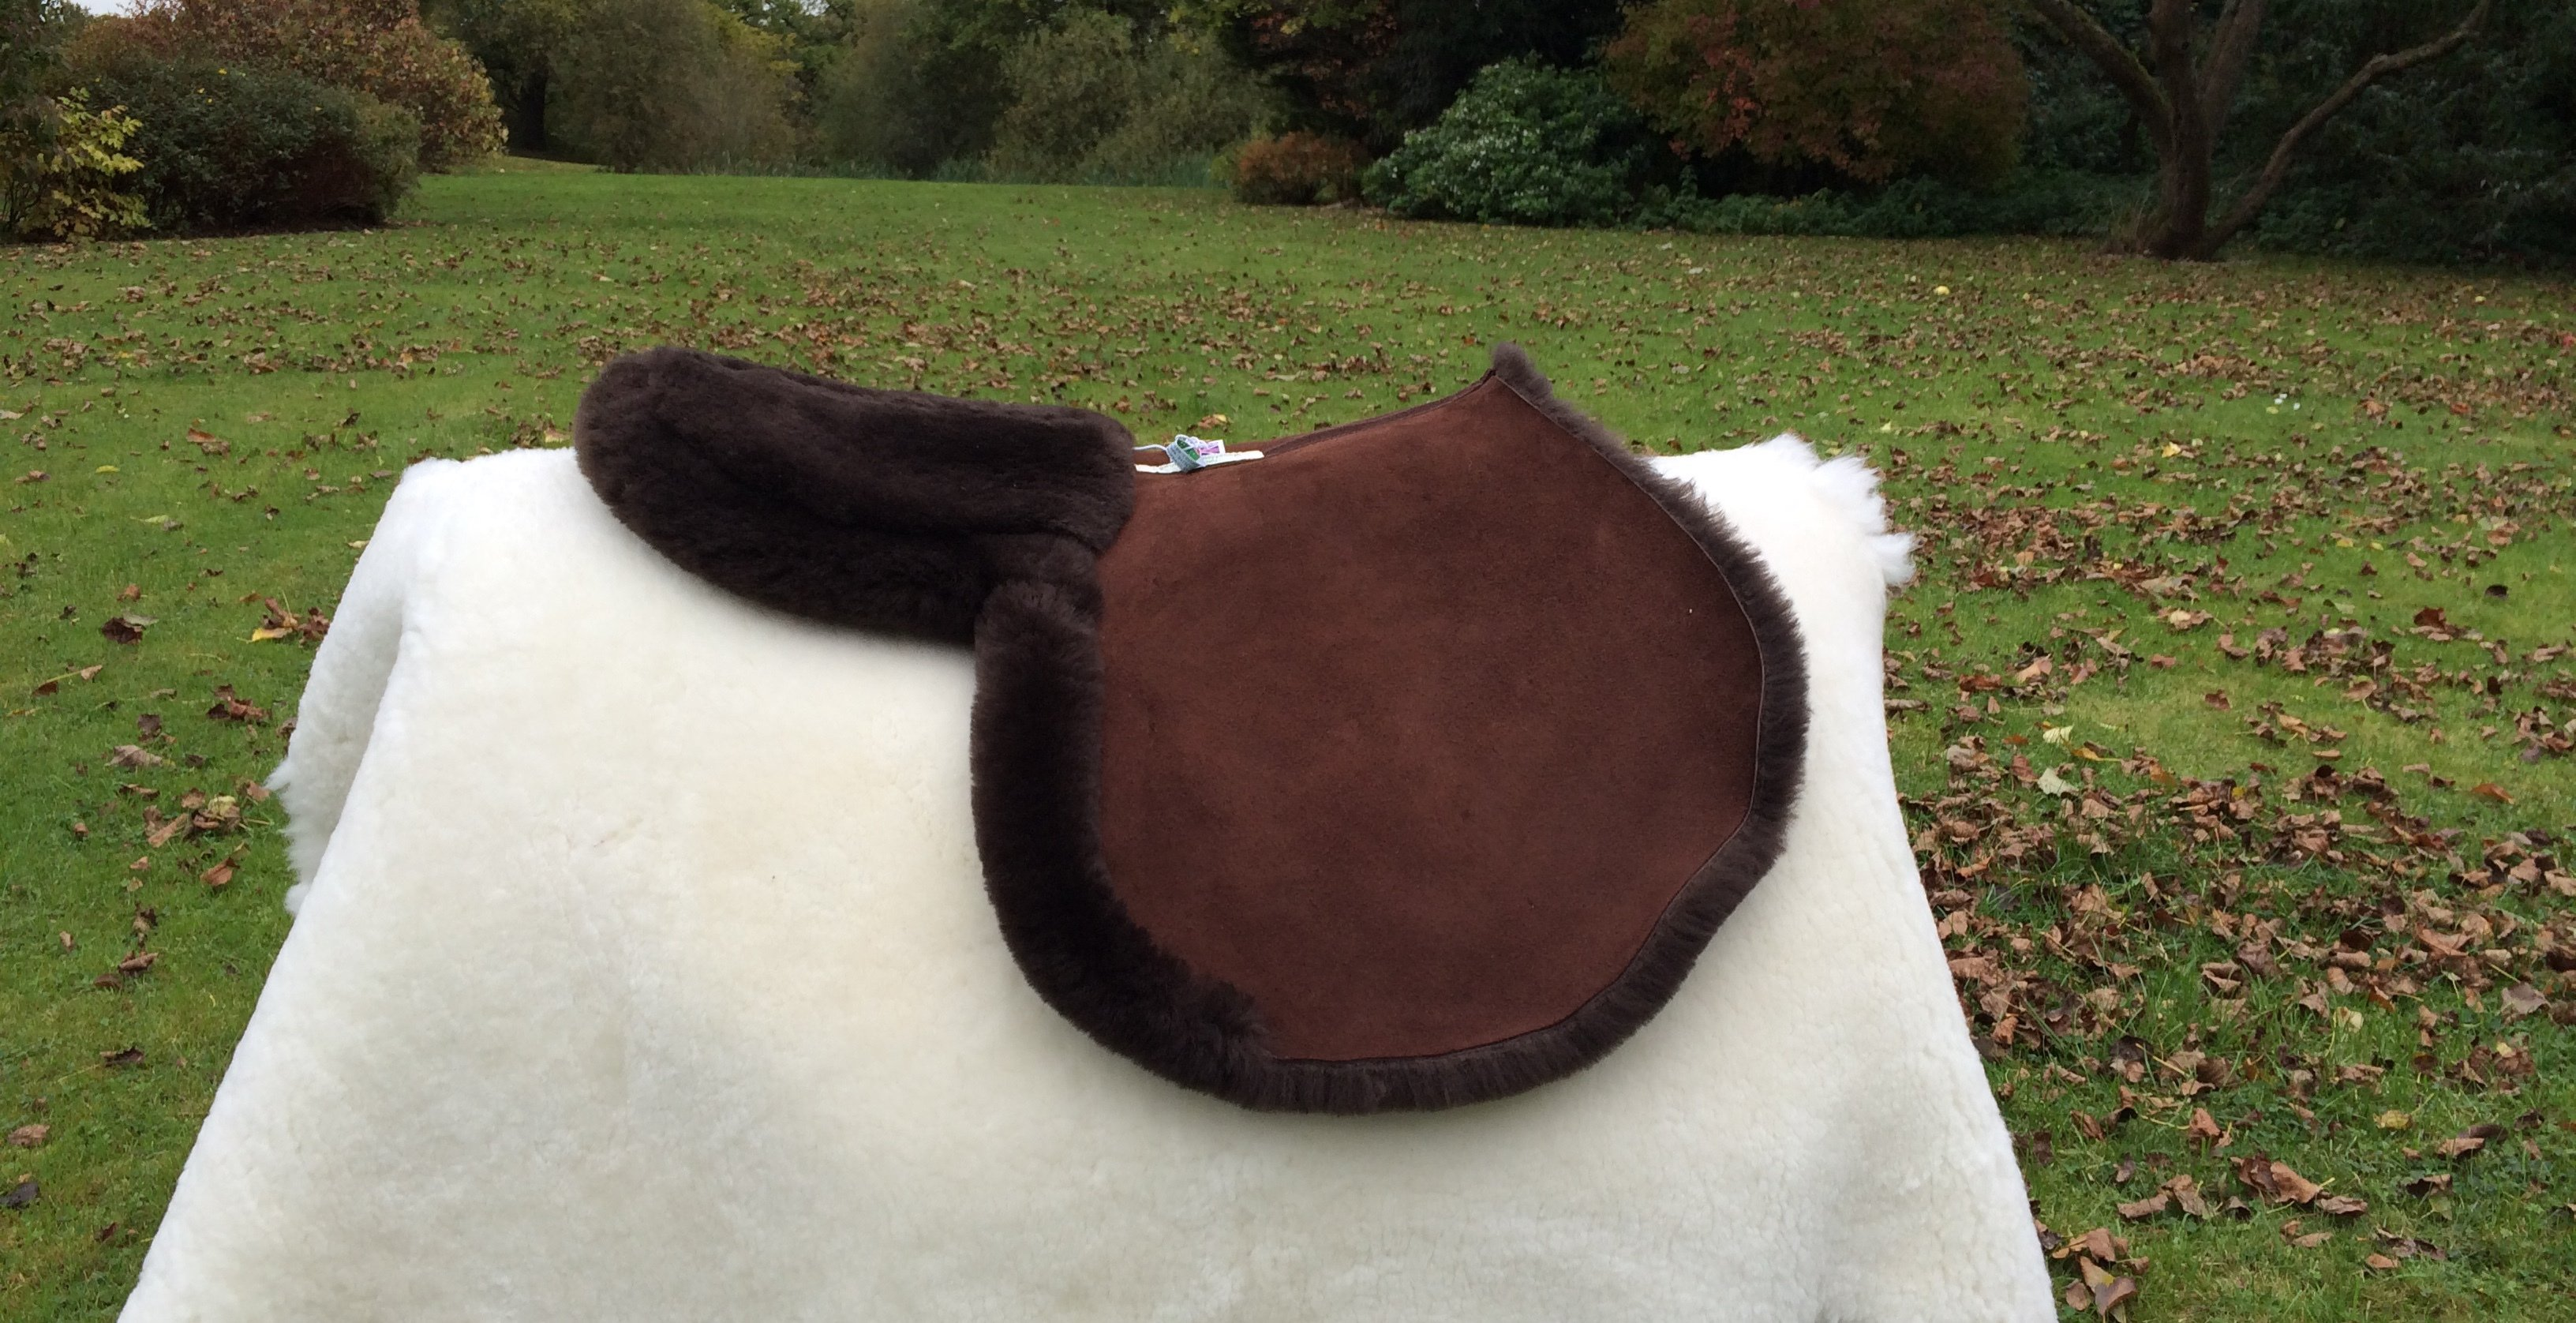 Jumping Cross Country Sheepskin Numnah with Turned Edges Around back of seat and flaps with a Detachable Riser Pad at Seat .